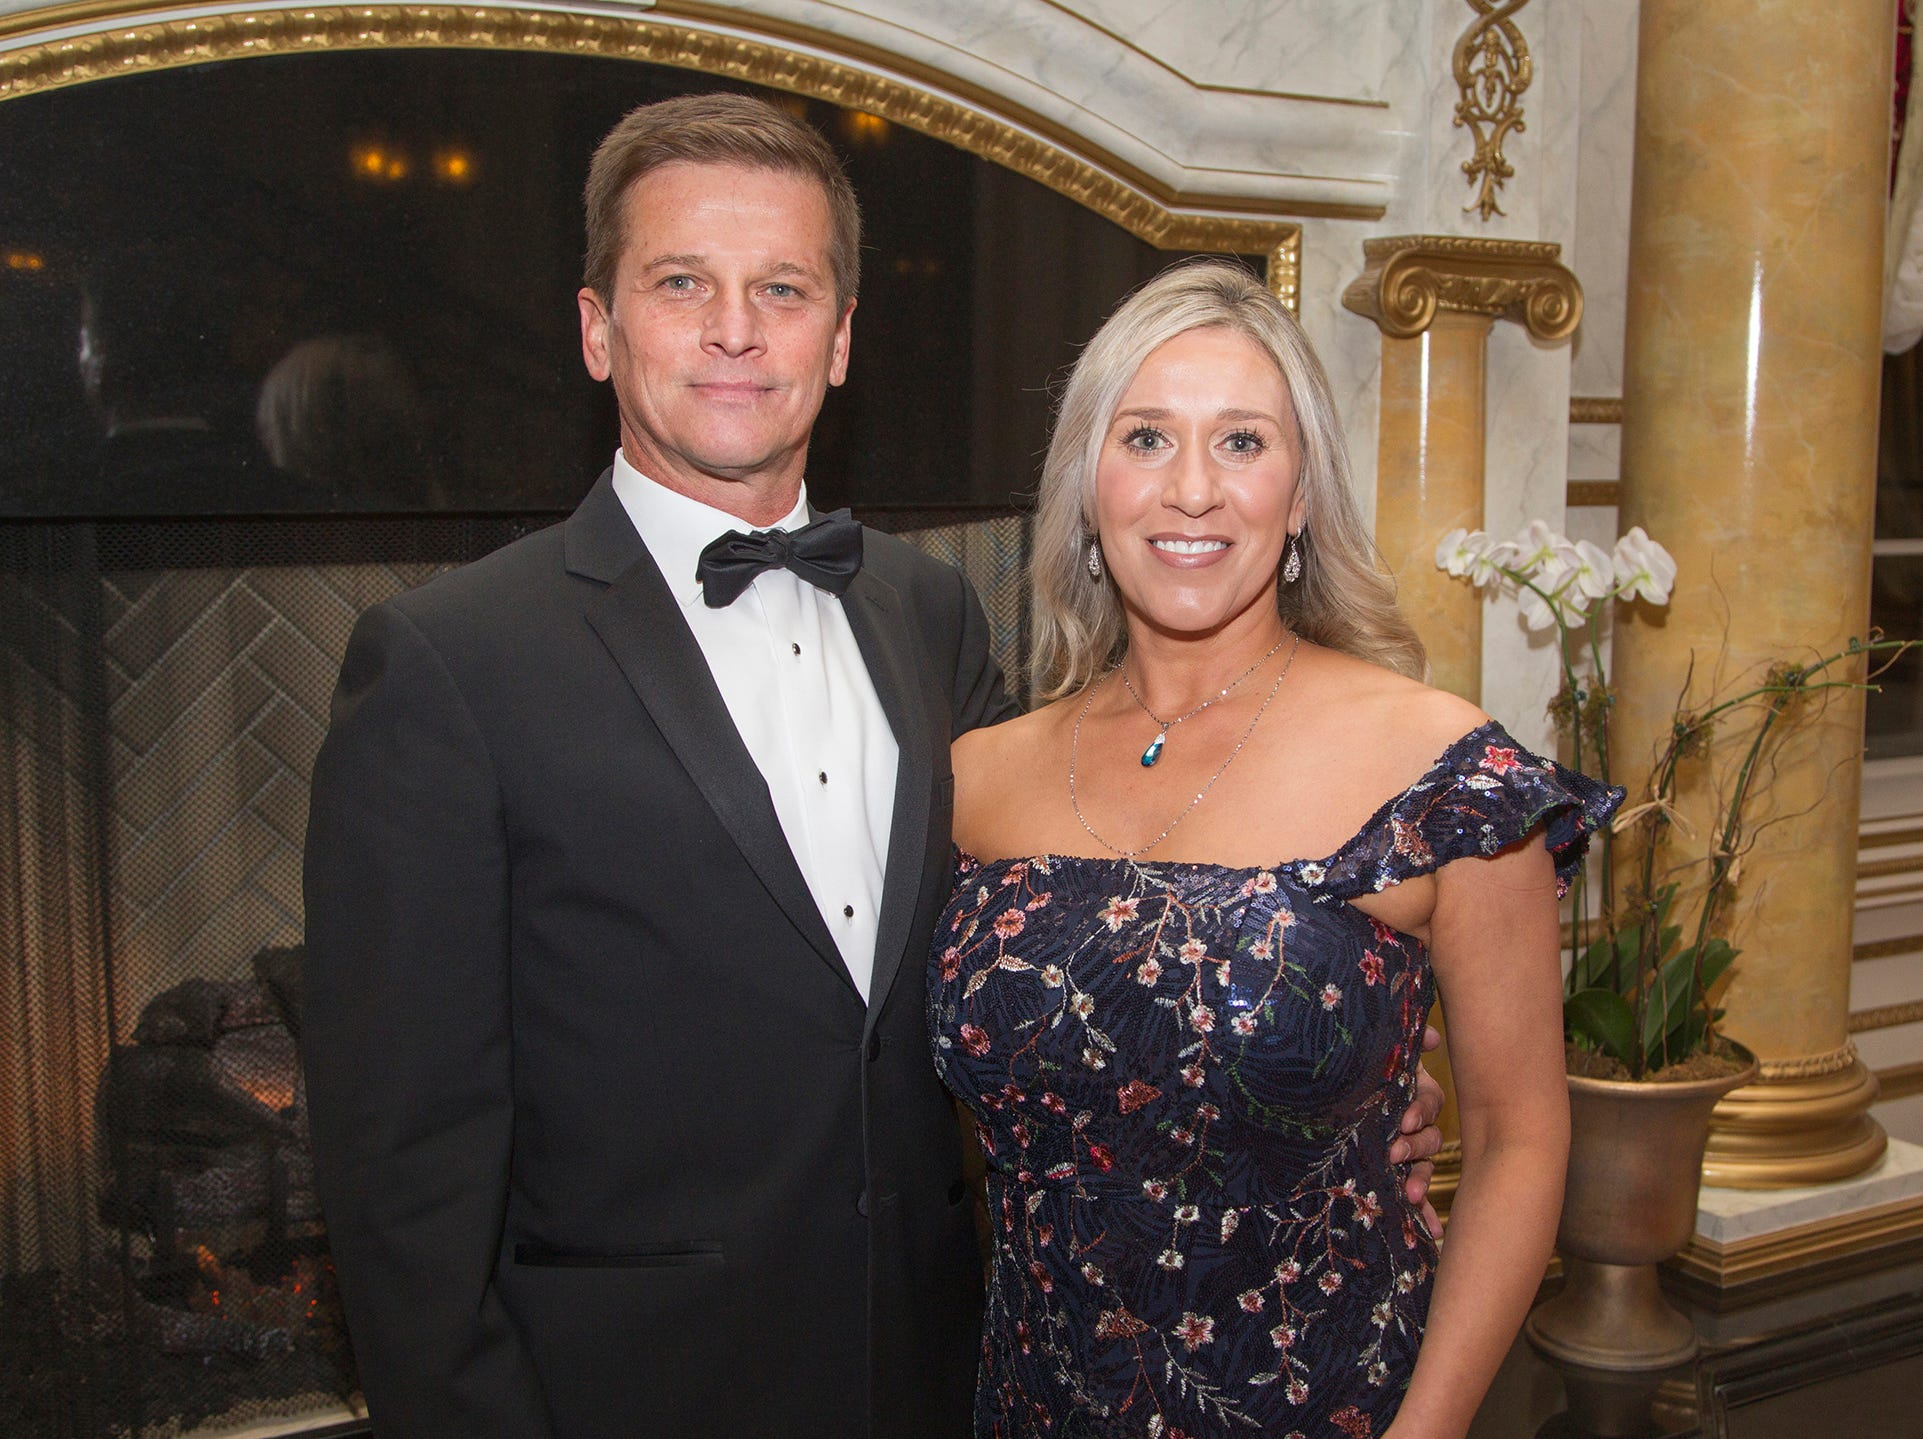 Phil and Kara Centineo. The 72nd Annual Valley Ball gala at The Legacy Castle in Pompton Plains. 11/16/2018